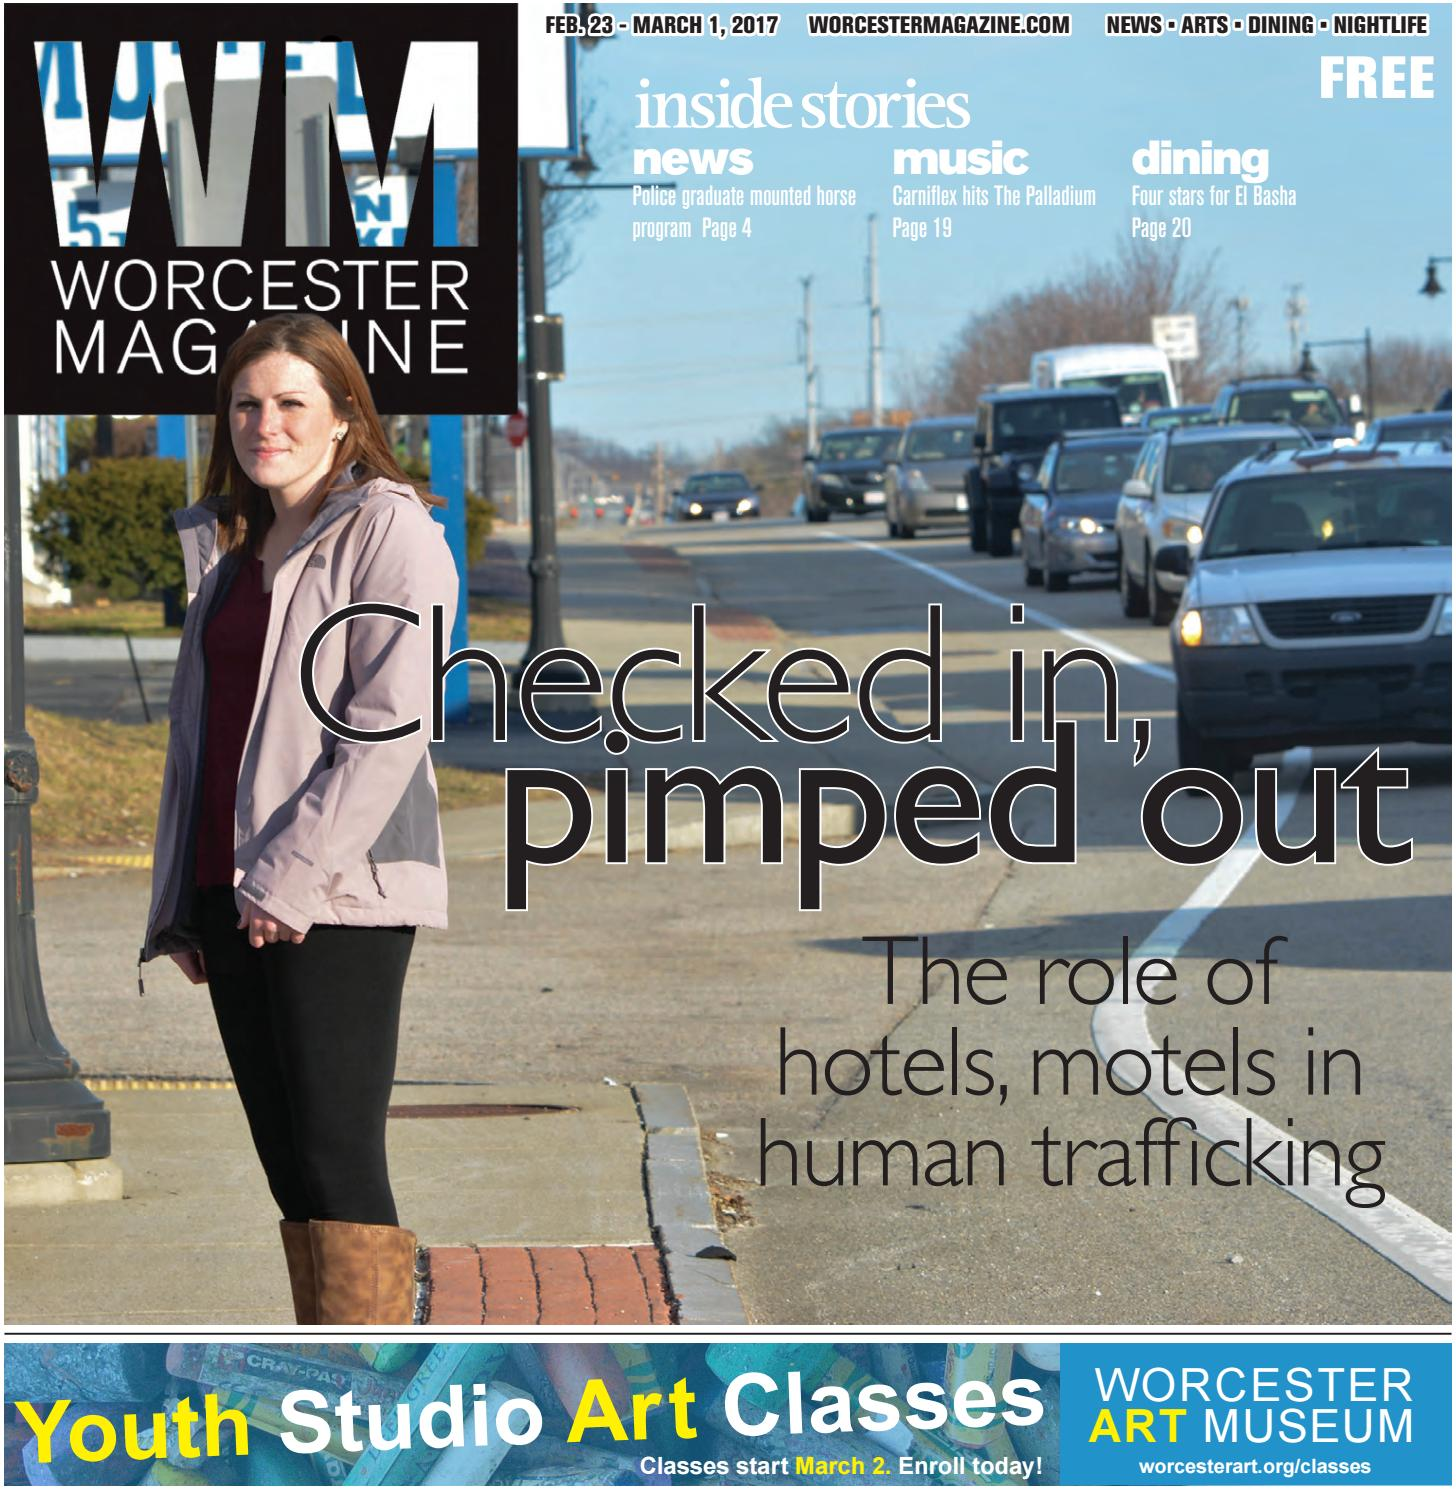 94394f228449 Worcester Magazine Feb. 23 - March 1